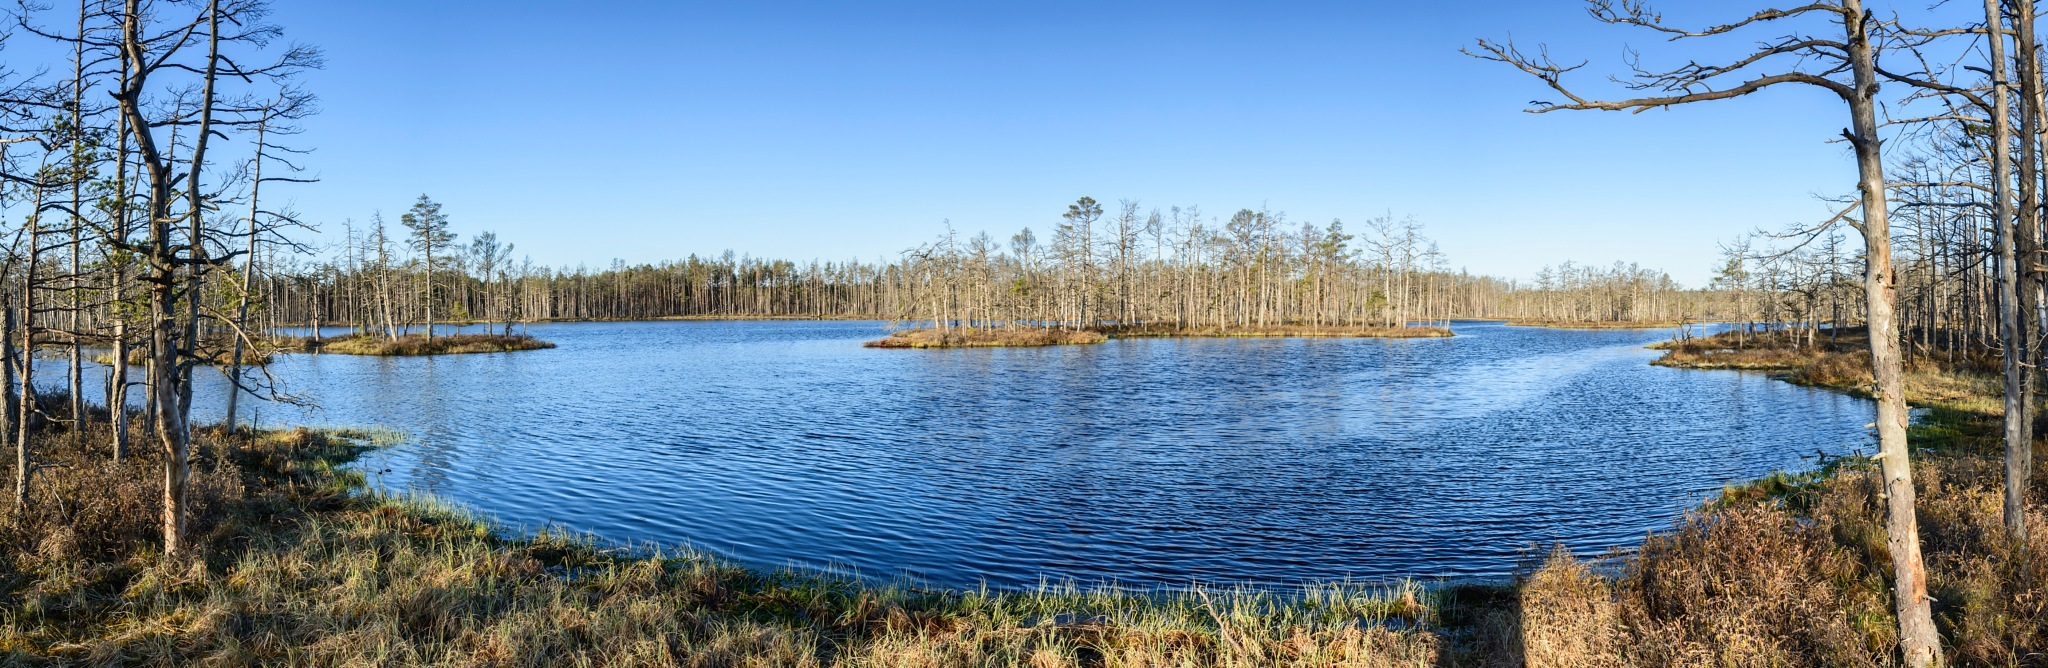 Lake in the woods 4 by nilsons1974